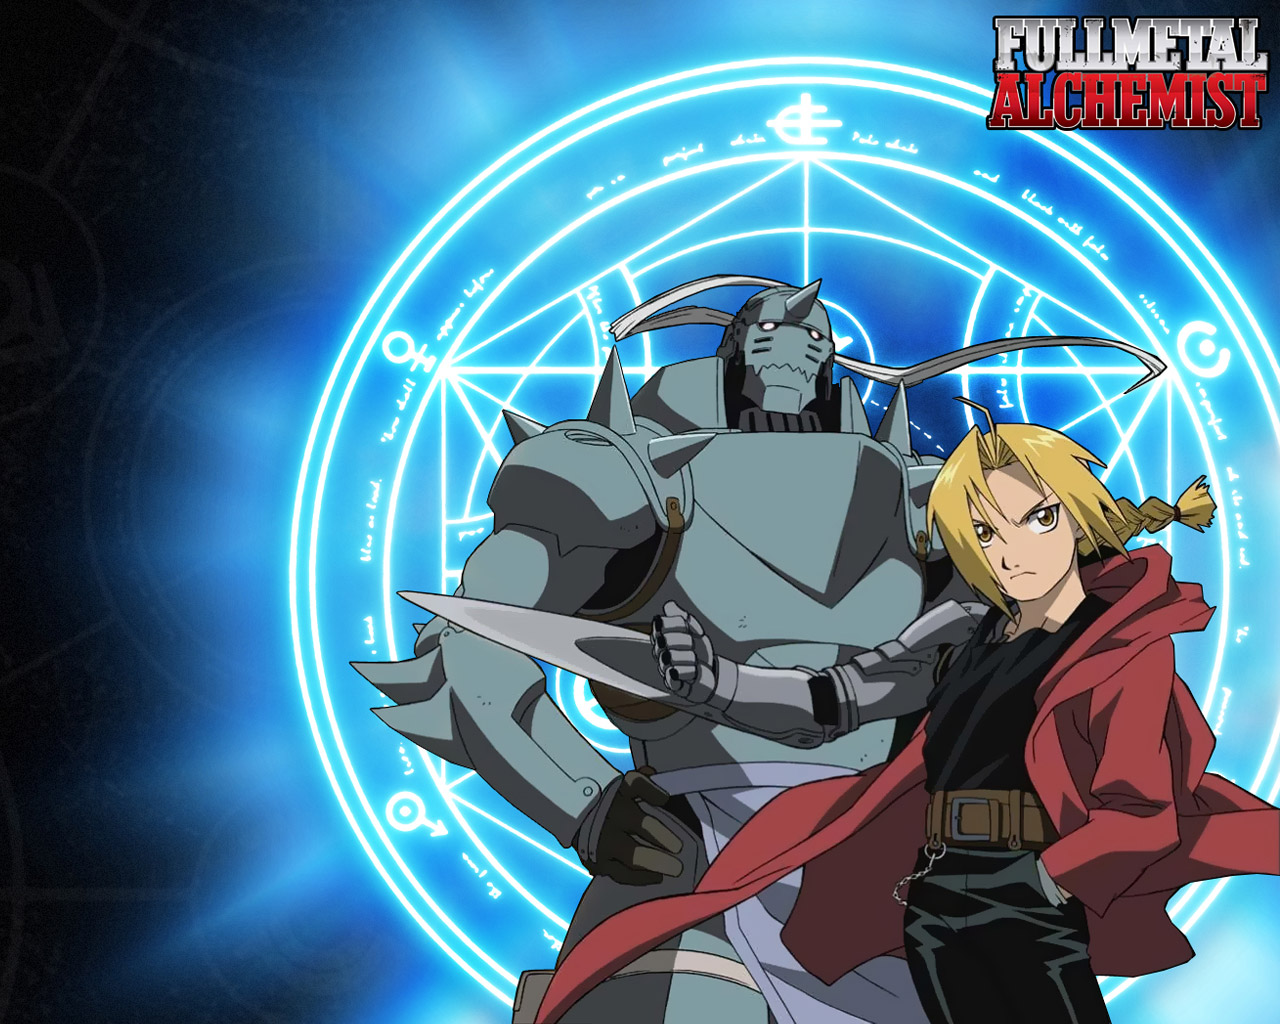 Full Metal Alchemist HD & Widescreen Wallpaper 0.518020555073673